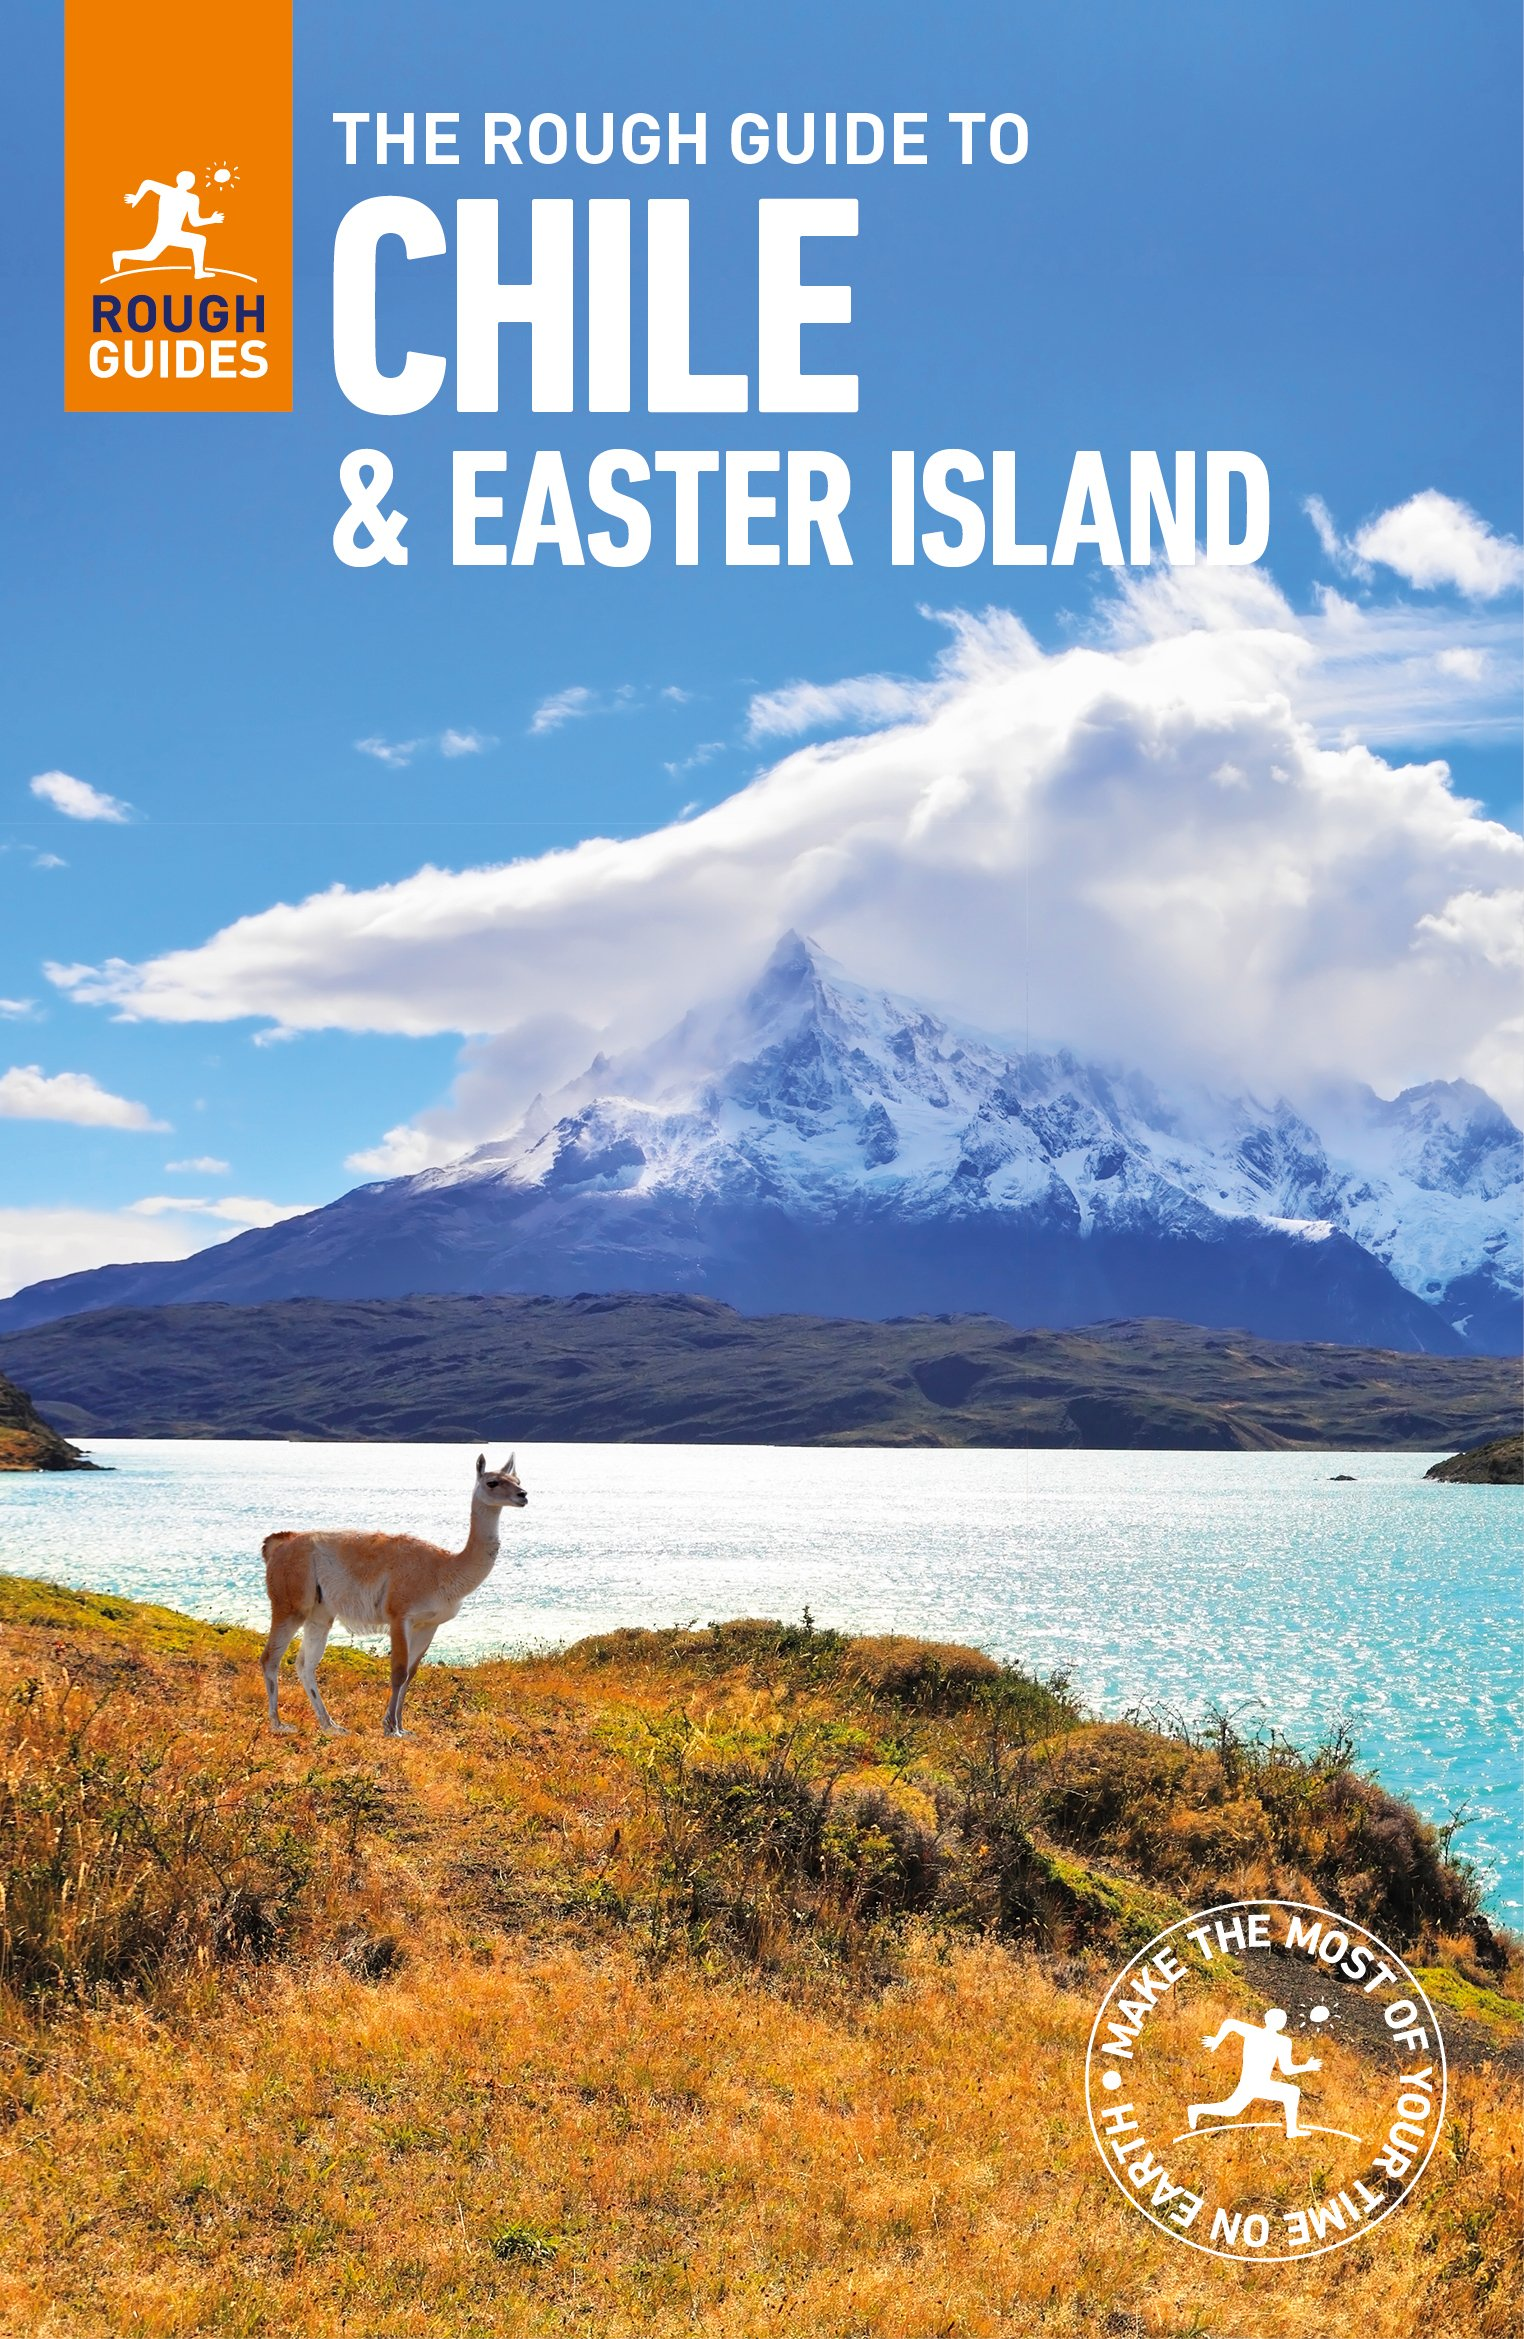 Rough Guide Chile & Easter Island (Chili en Paaseiland) 9780241311653  Rough Guide Rough Guides  Reisgidsen Chili